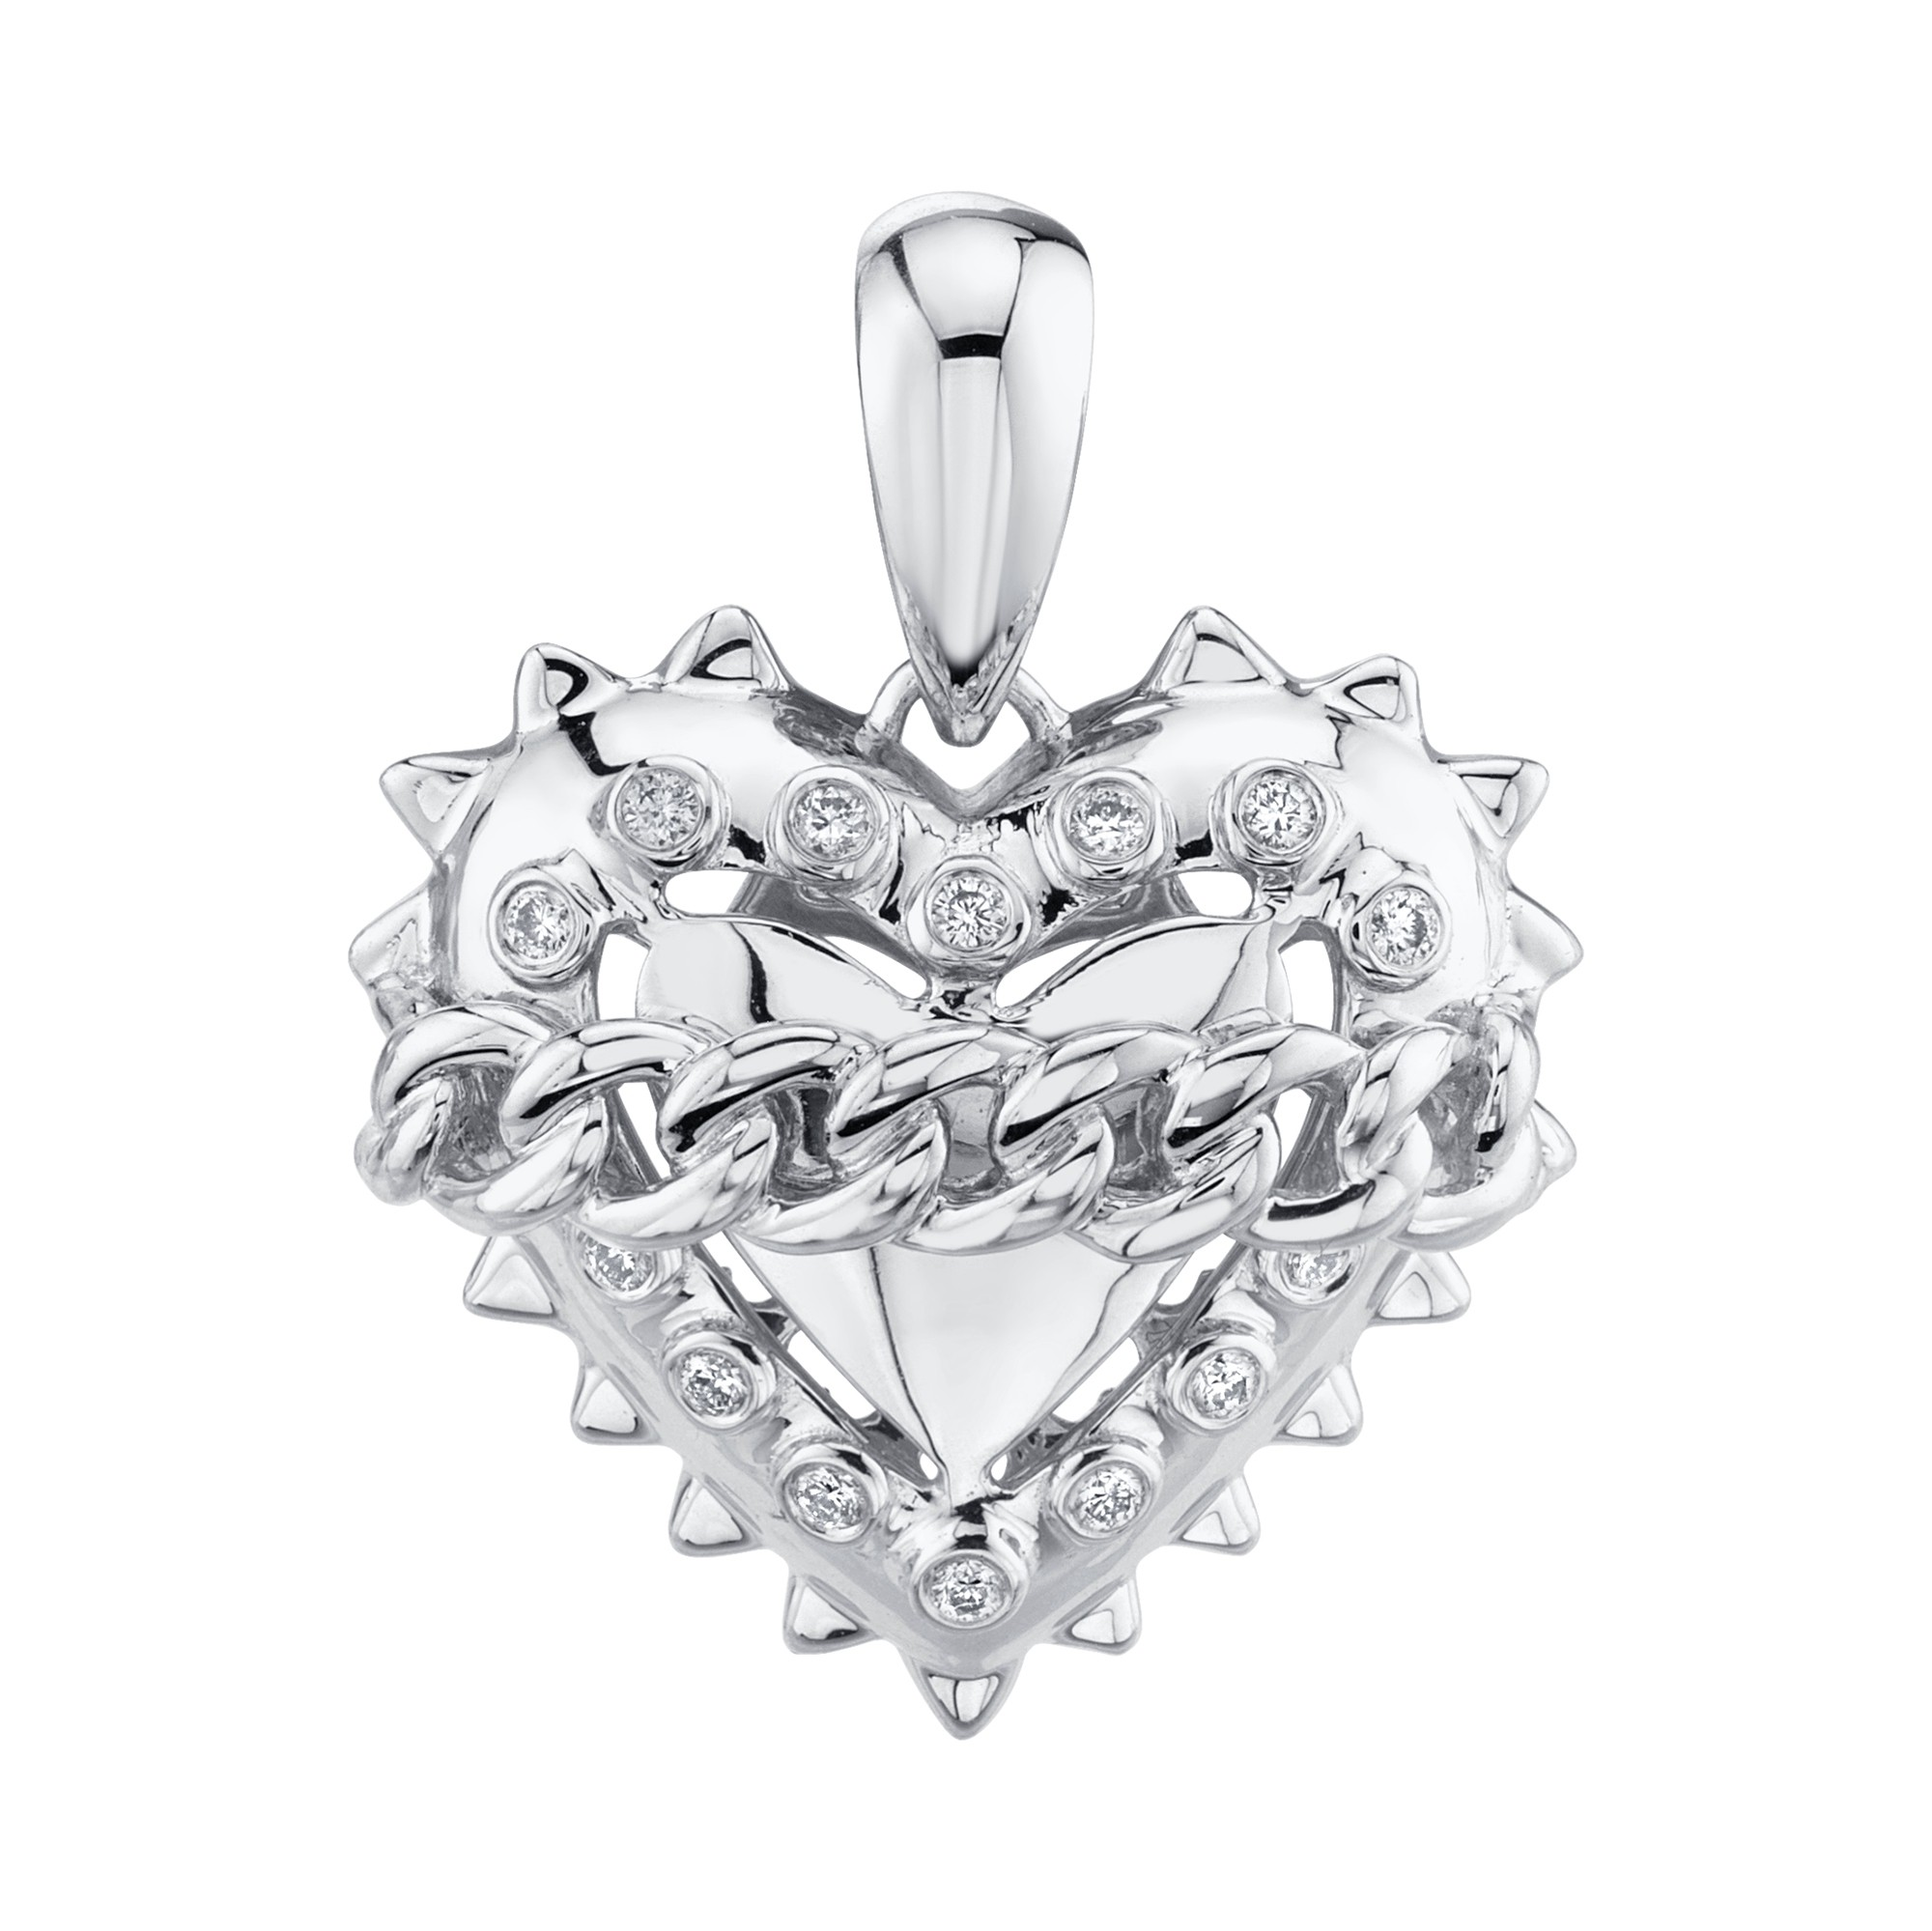 14k White Gold Chained Heart Charm